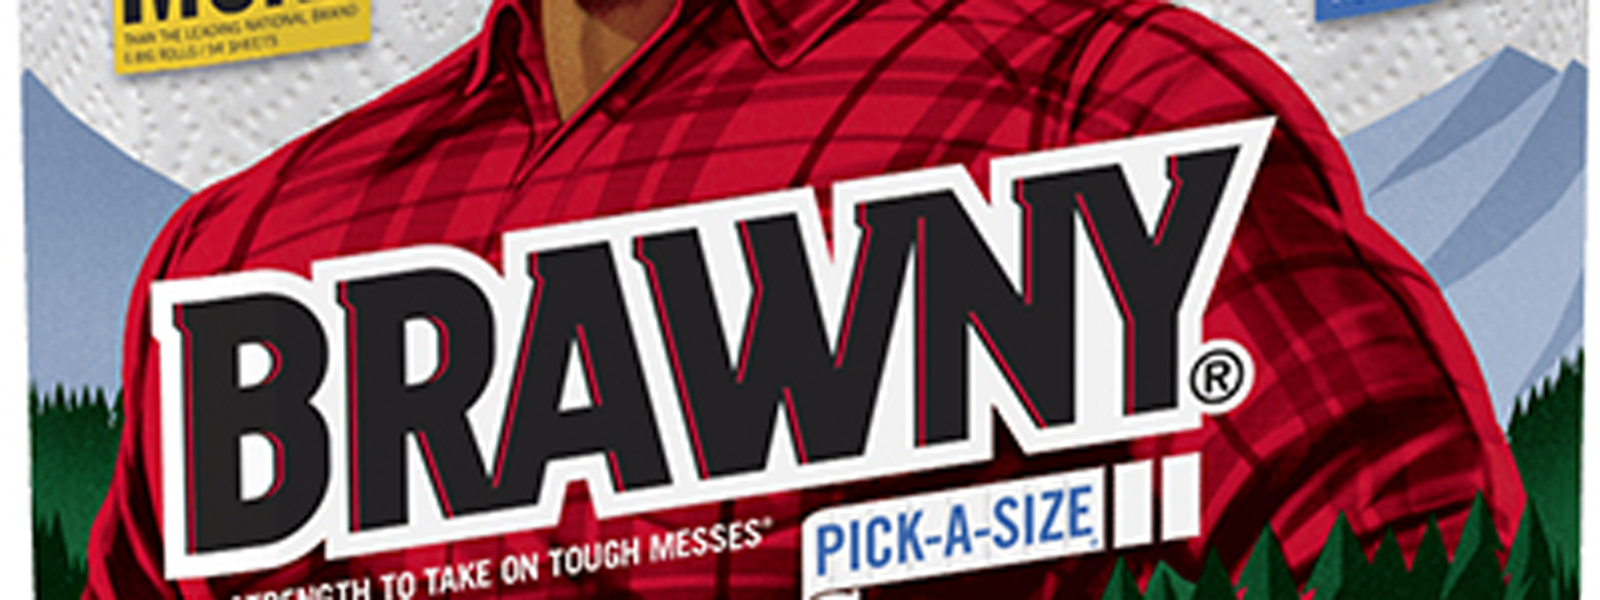 Brawny is Bigger and Better Than Ever